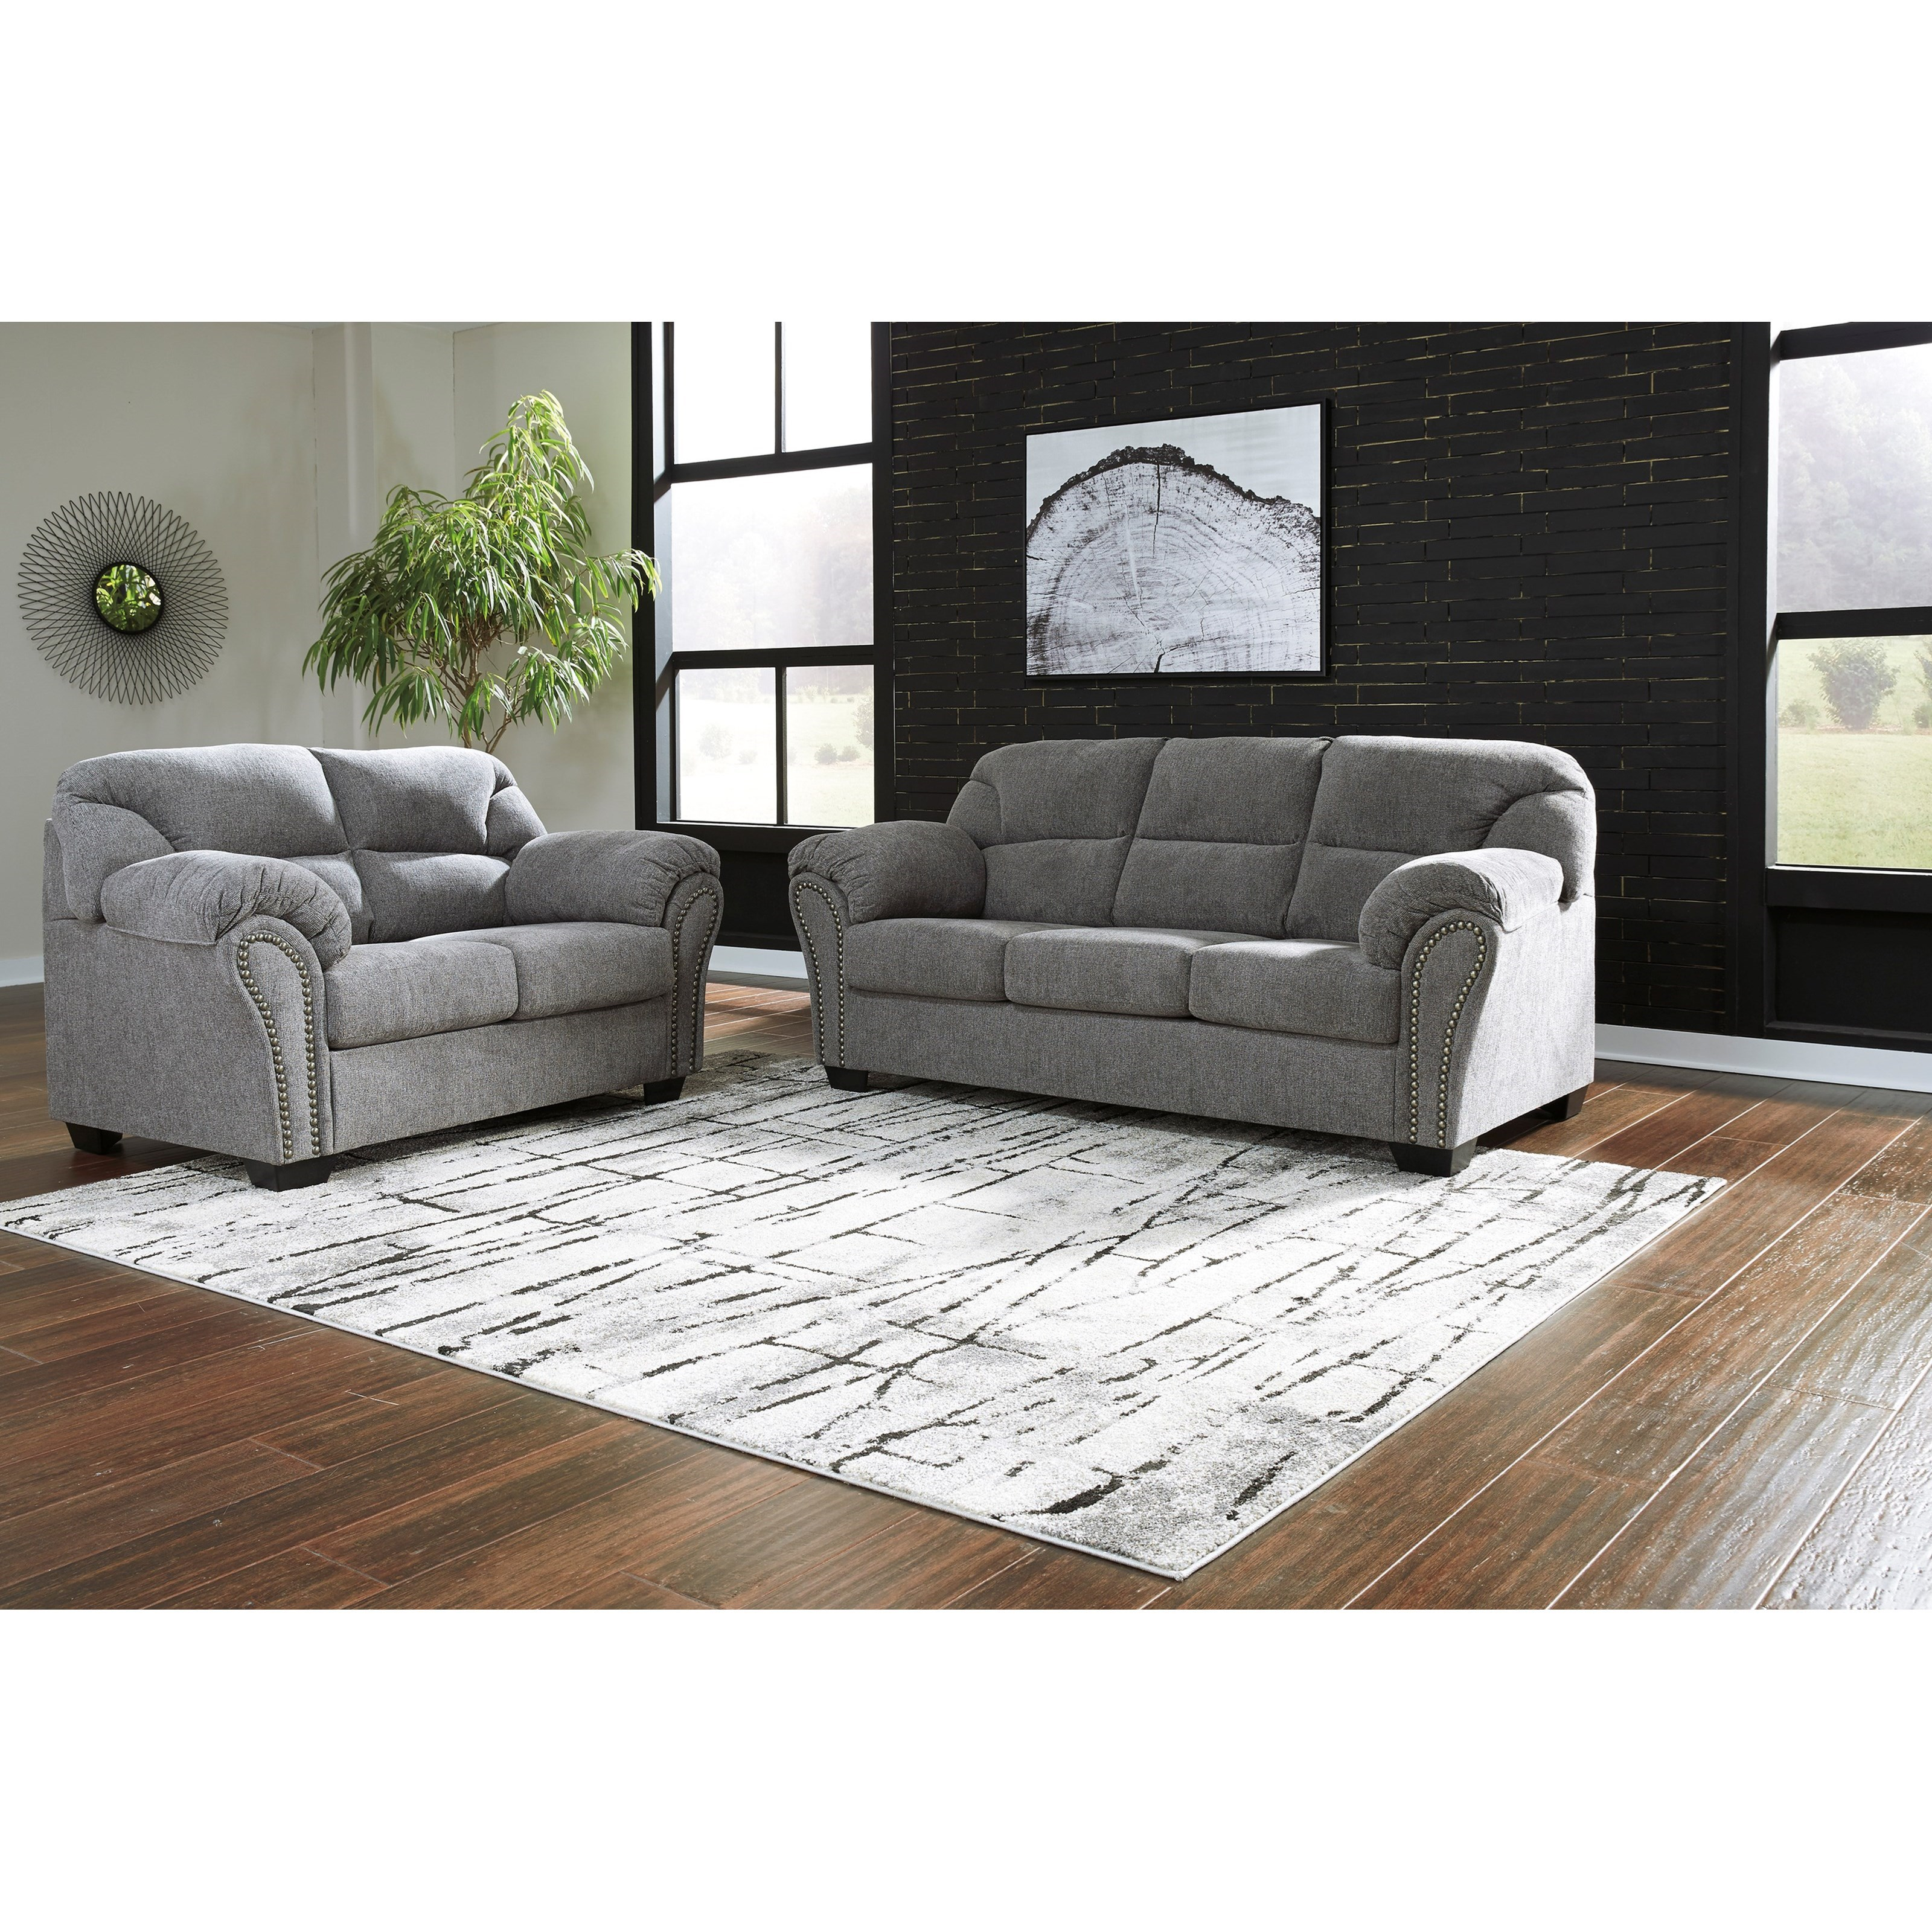 Allmaxx Living Room Group by Benchcraft at Suburban Furniture